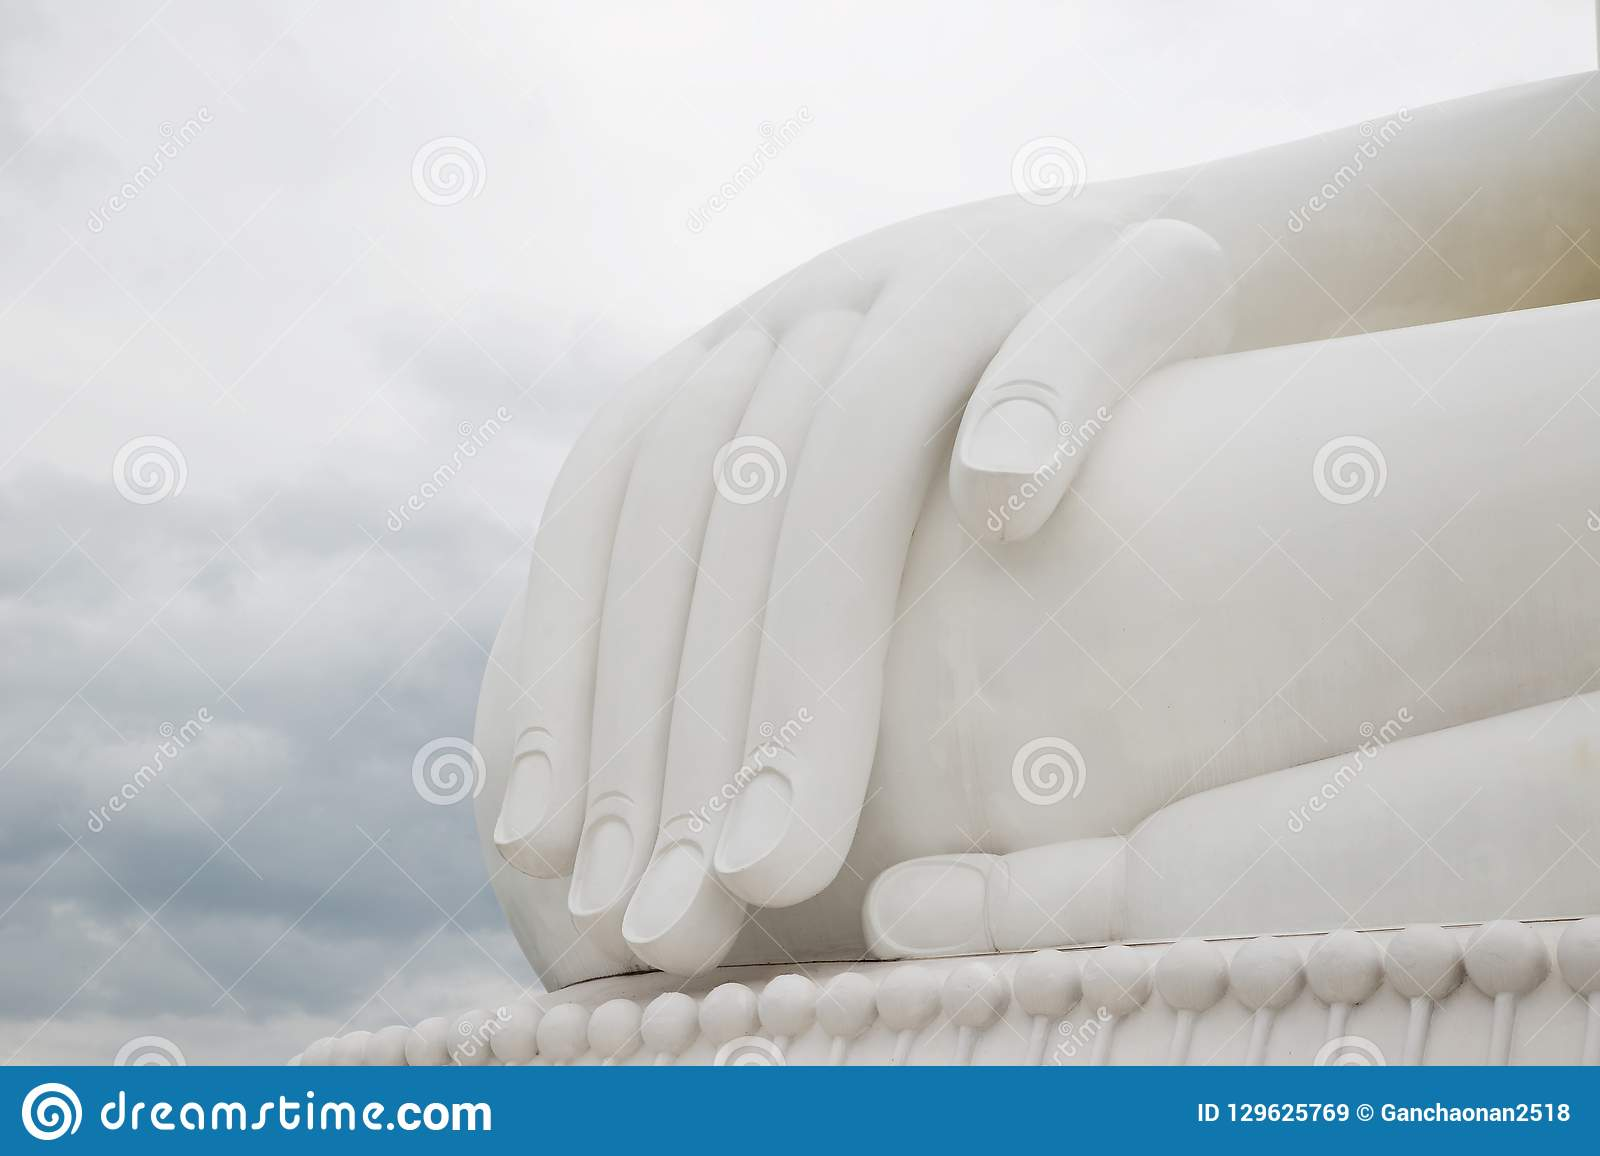 The hand of the white Buddha sky blue background.